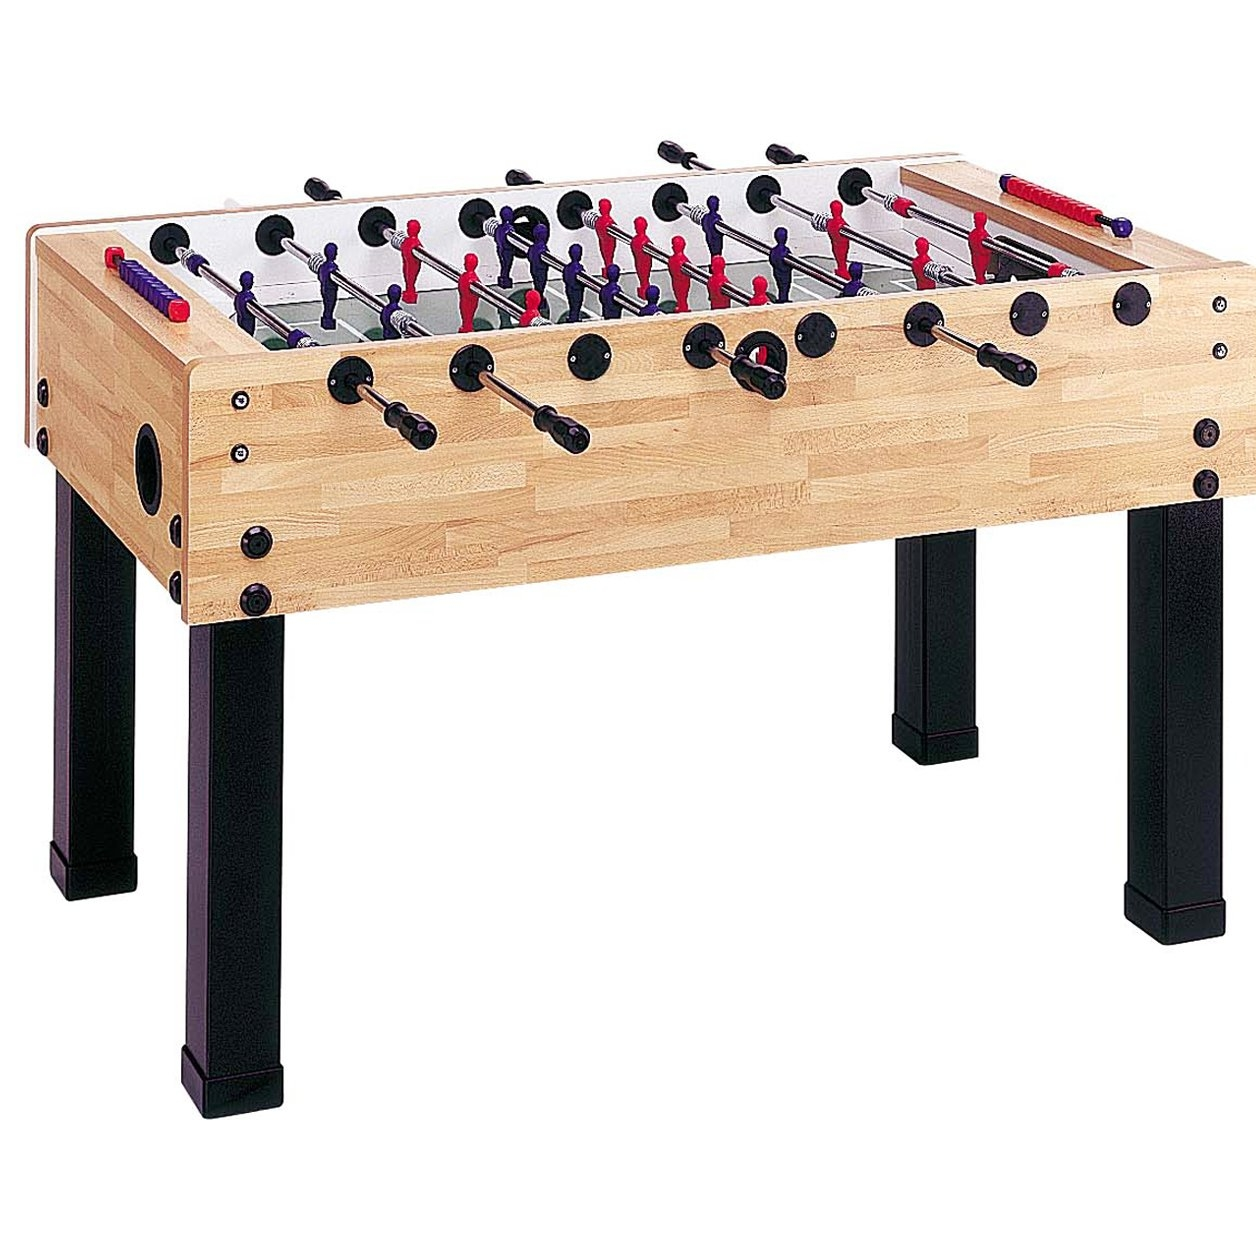 Garlando G500 Table Football Table